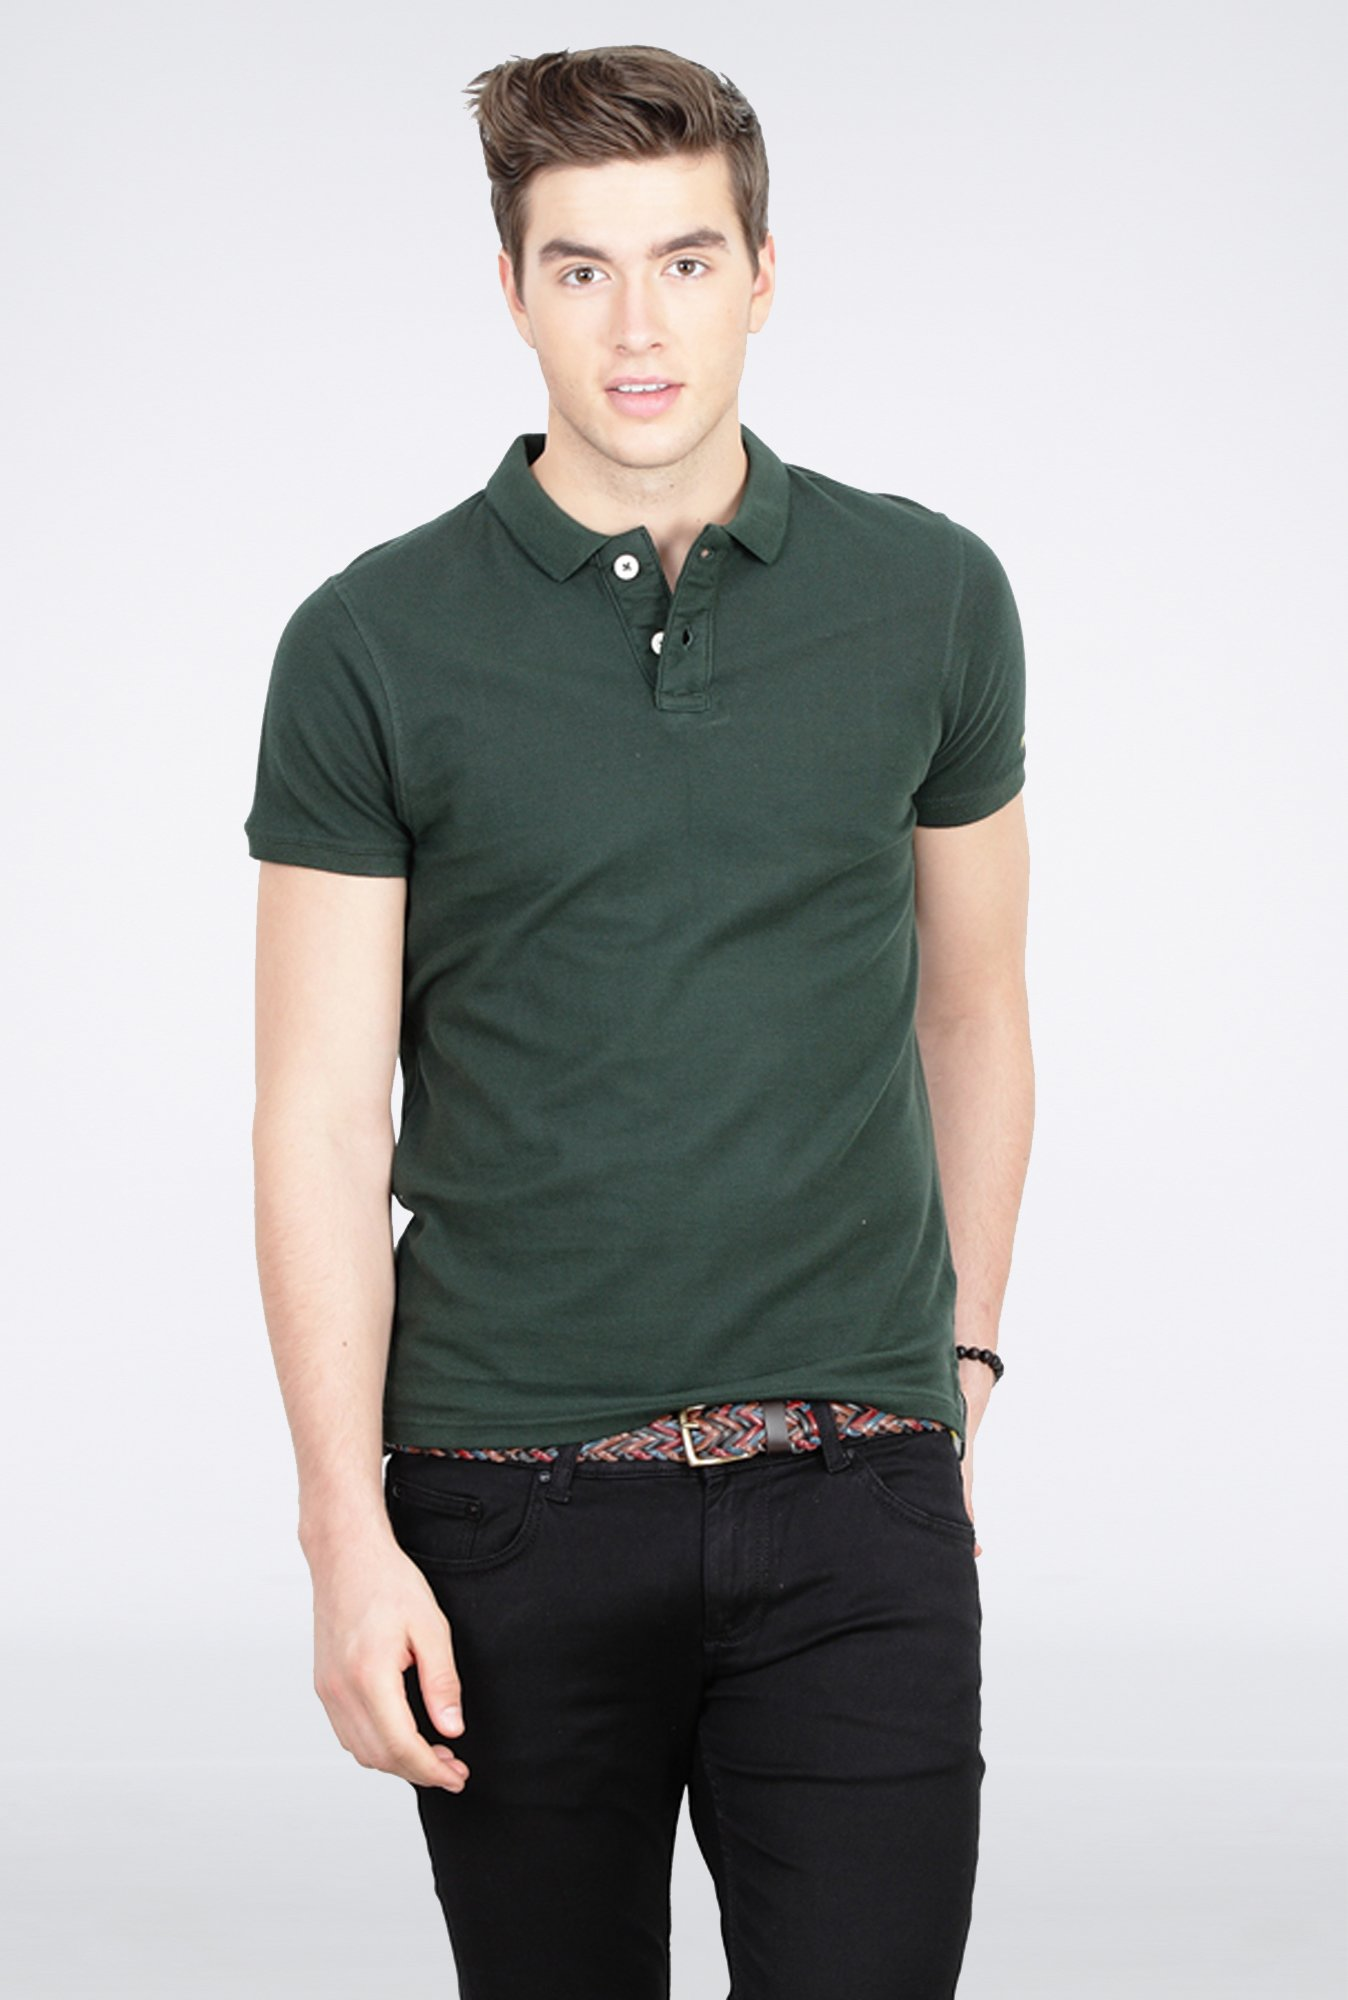 Basics Dark Green Polo T Shirt